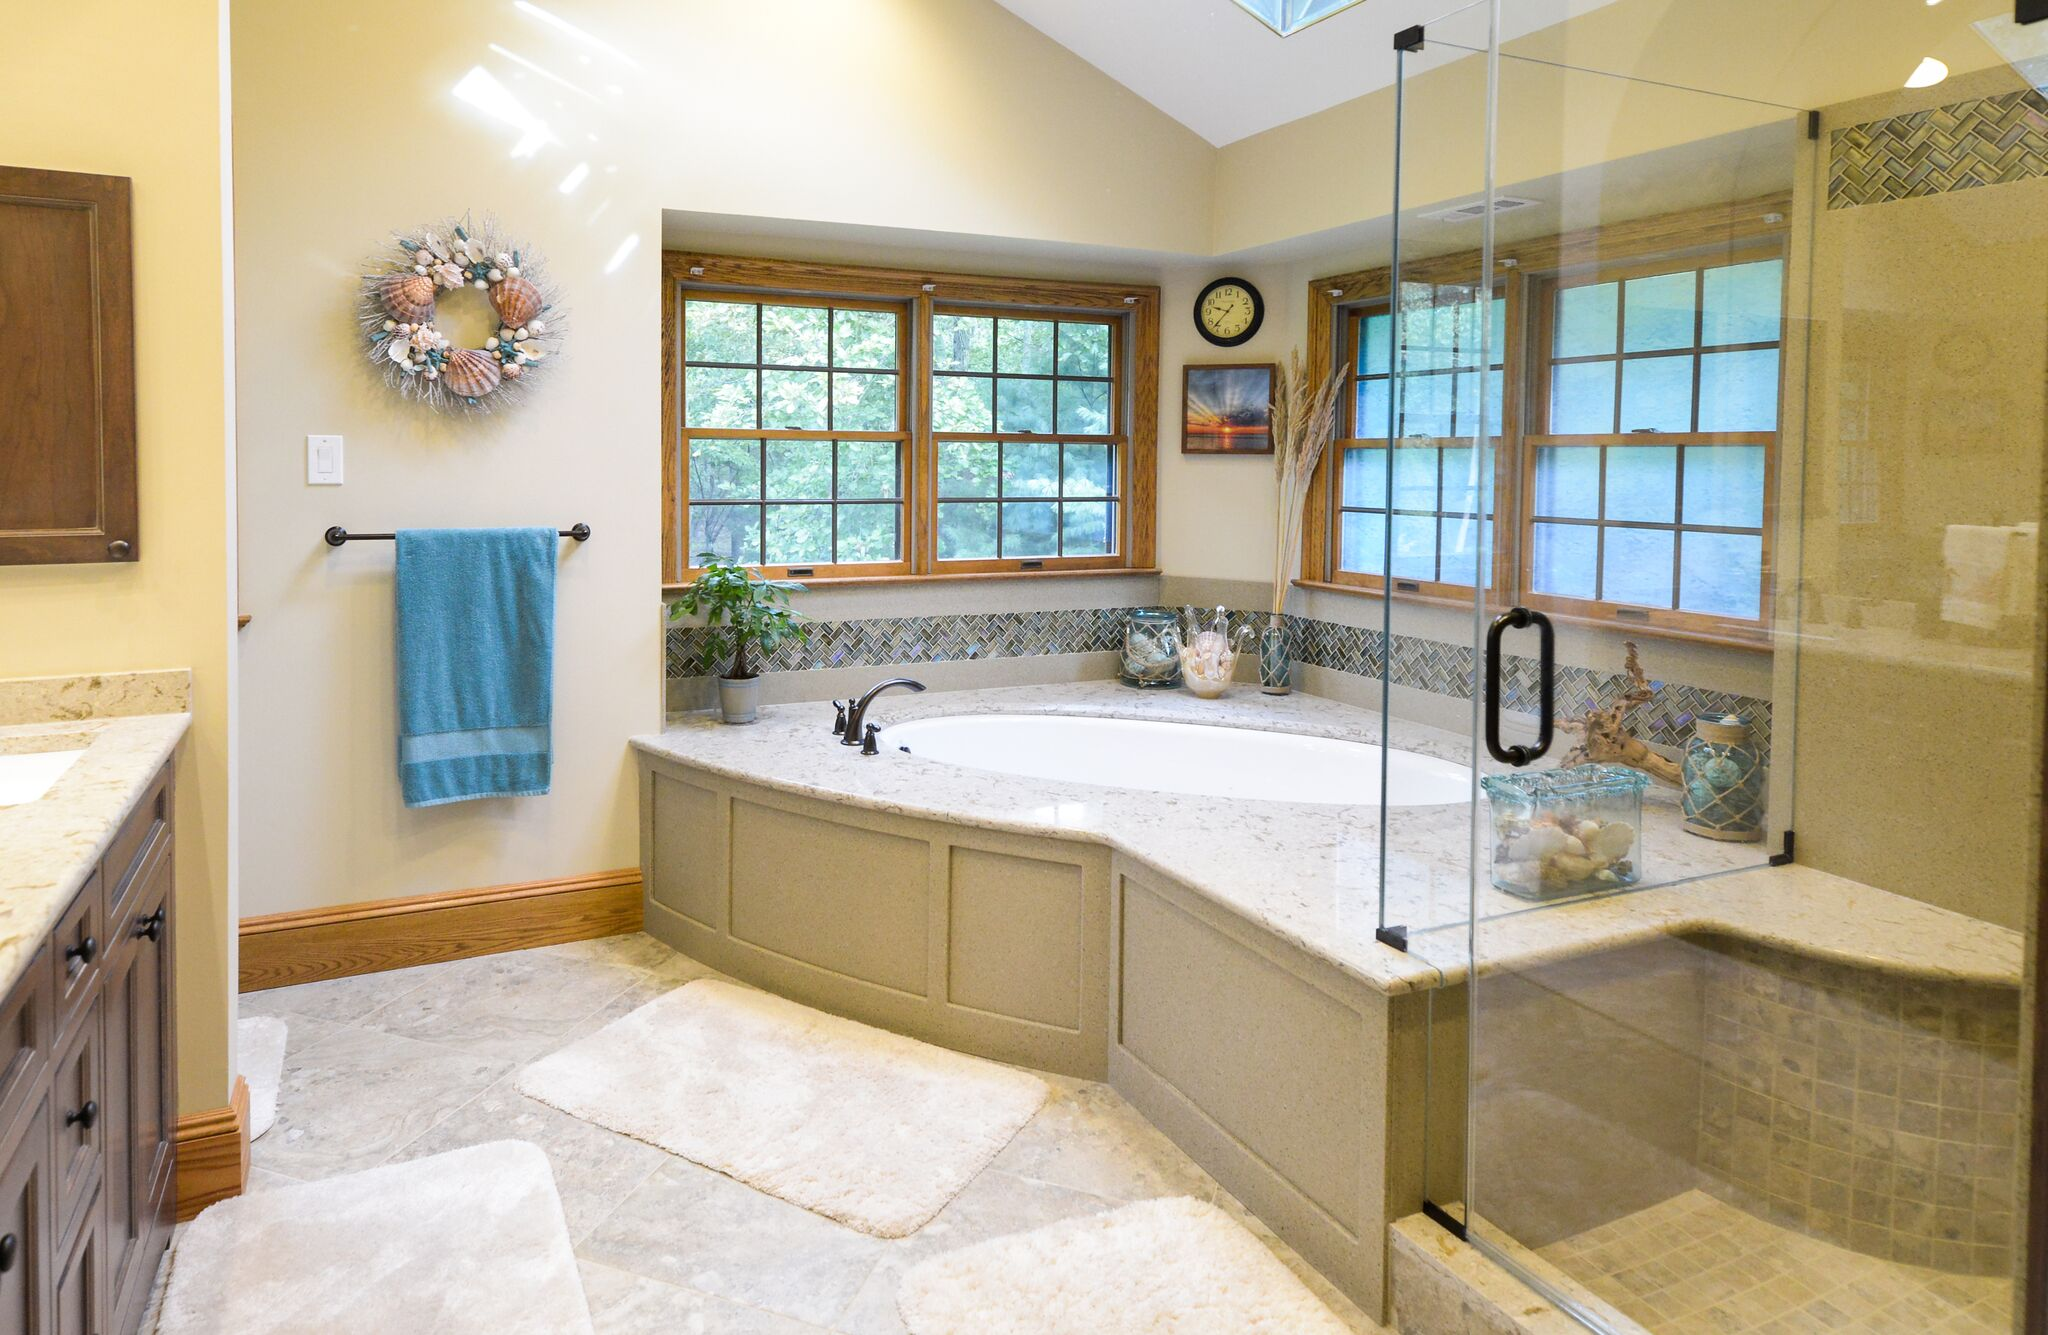 Bathroom Remodeling Cherry Hill NJ Nuss Construction - Bathroom remodel schedule